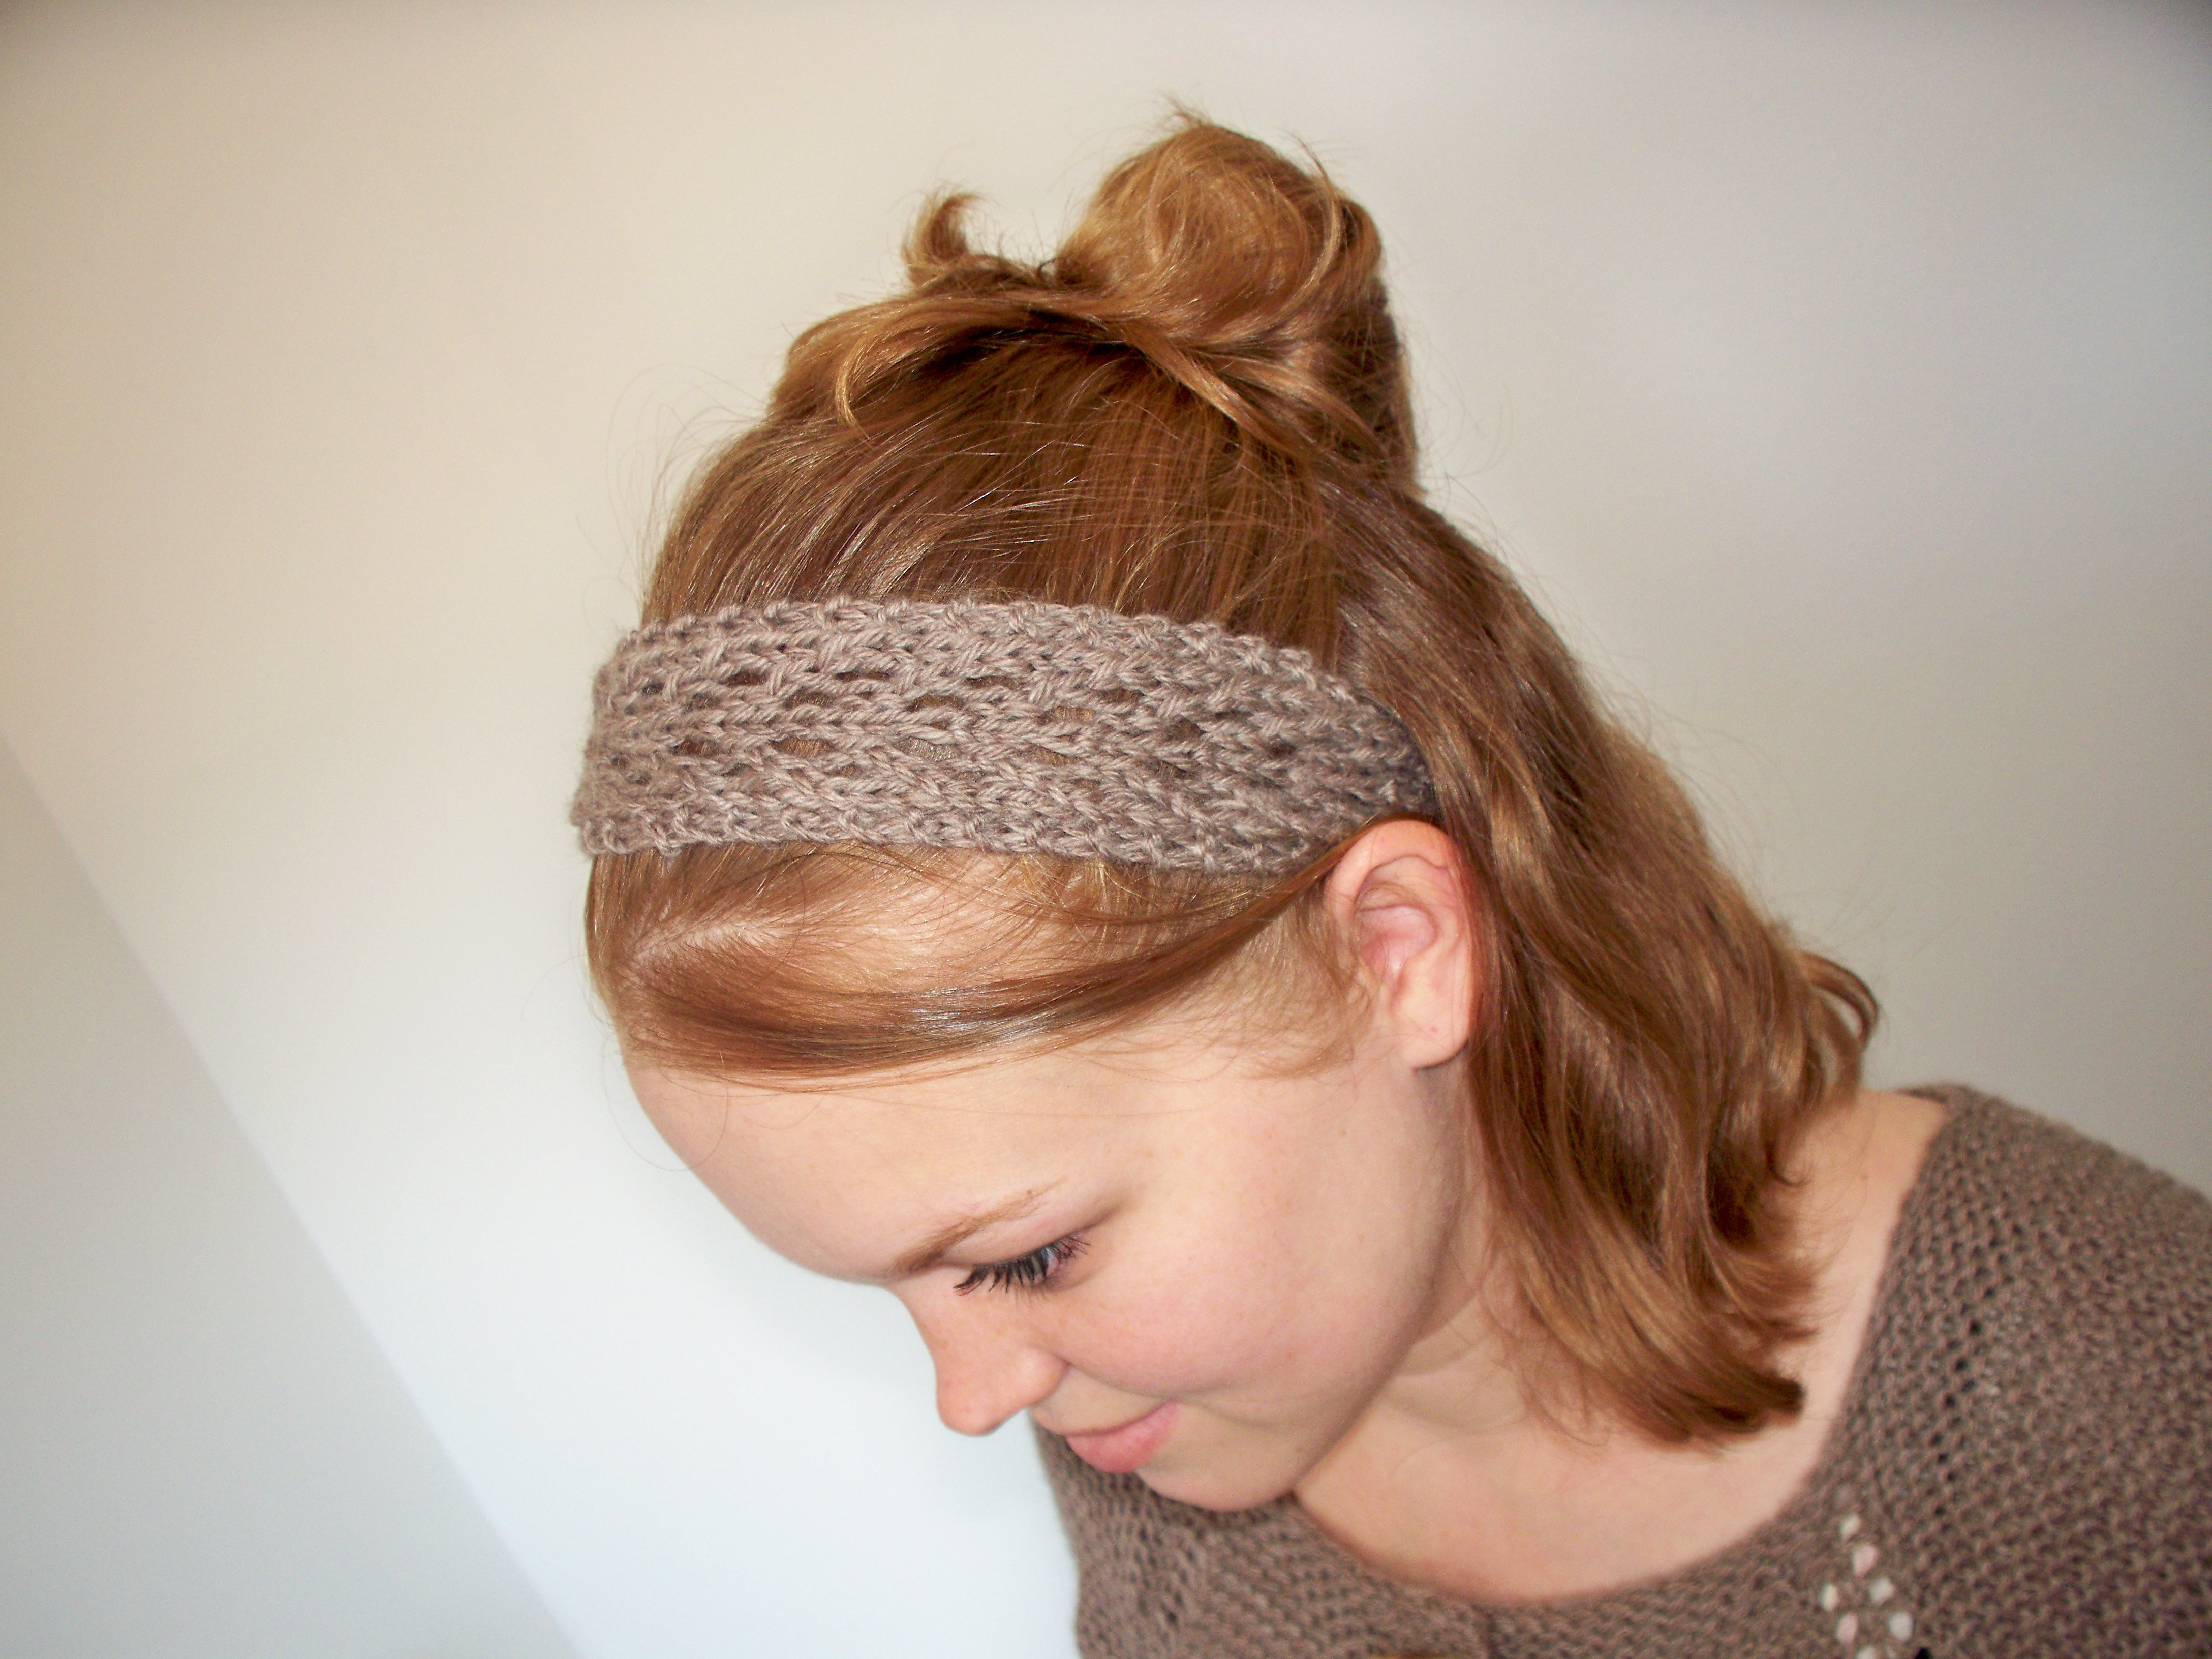 Knit Headband Pattern Lovely Knitted Headbands for Every Time Of the Year Of Gorgeous 49 Ideas Knit Headband Pattern